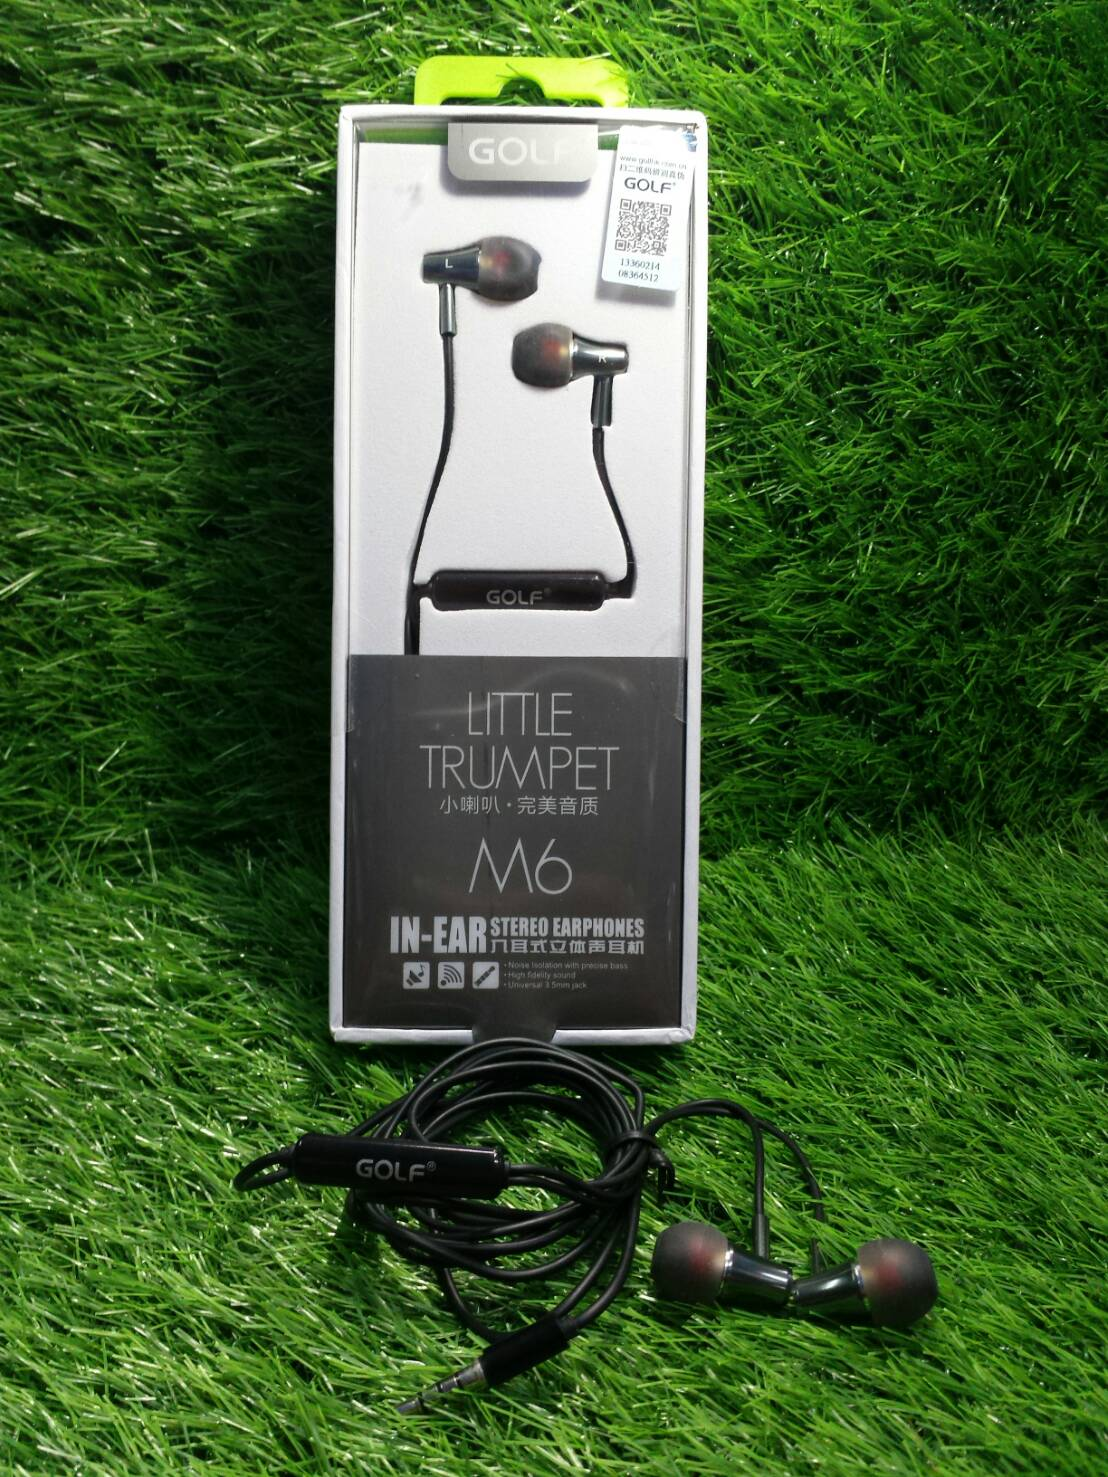 GOLF M6 LITTLE TRUMPET IN-EAR STEREO EARPHONESประกัน1เดือน